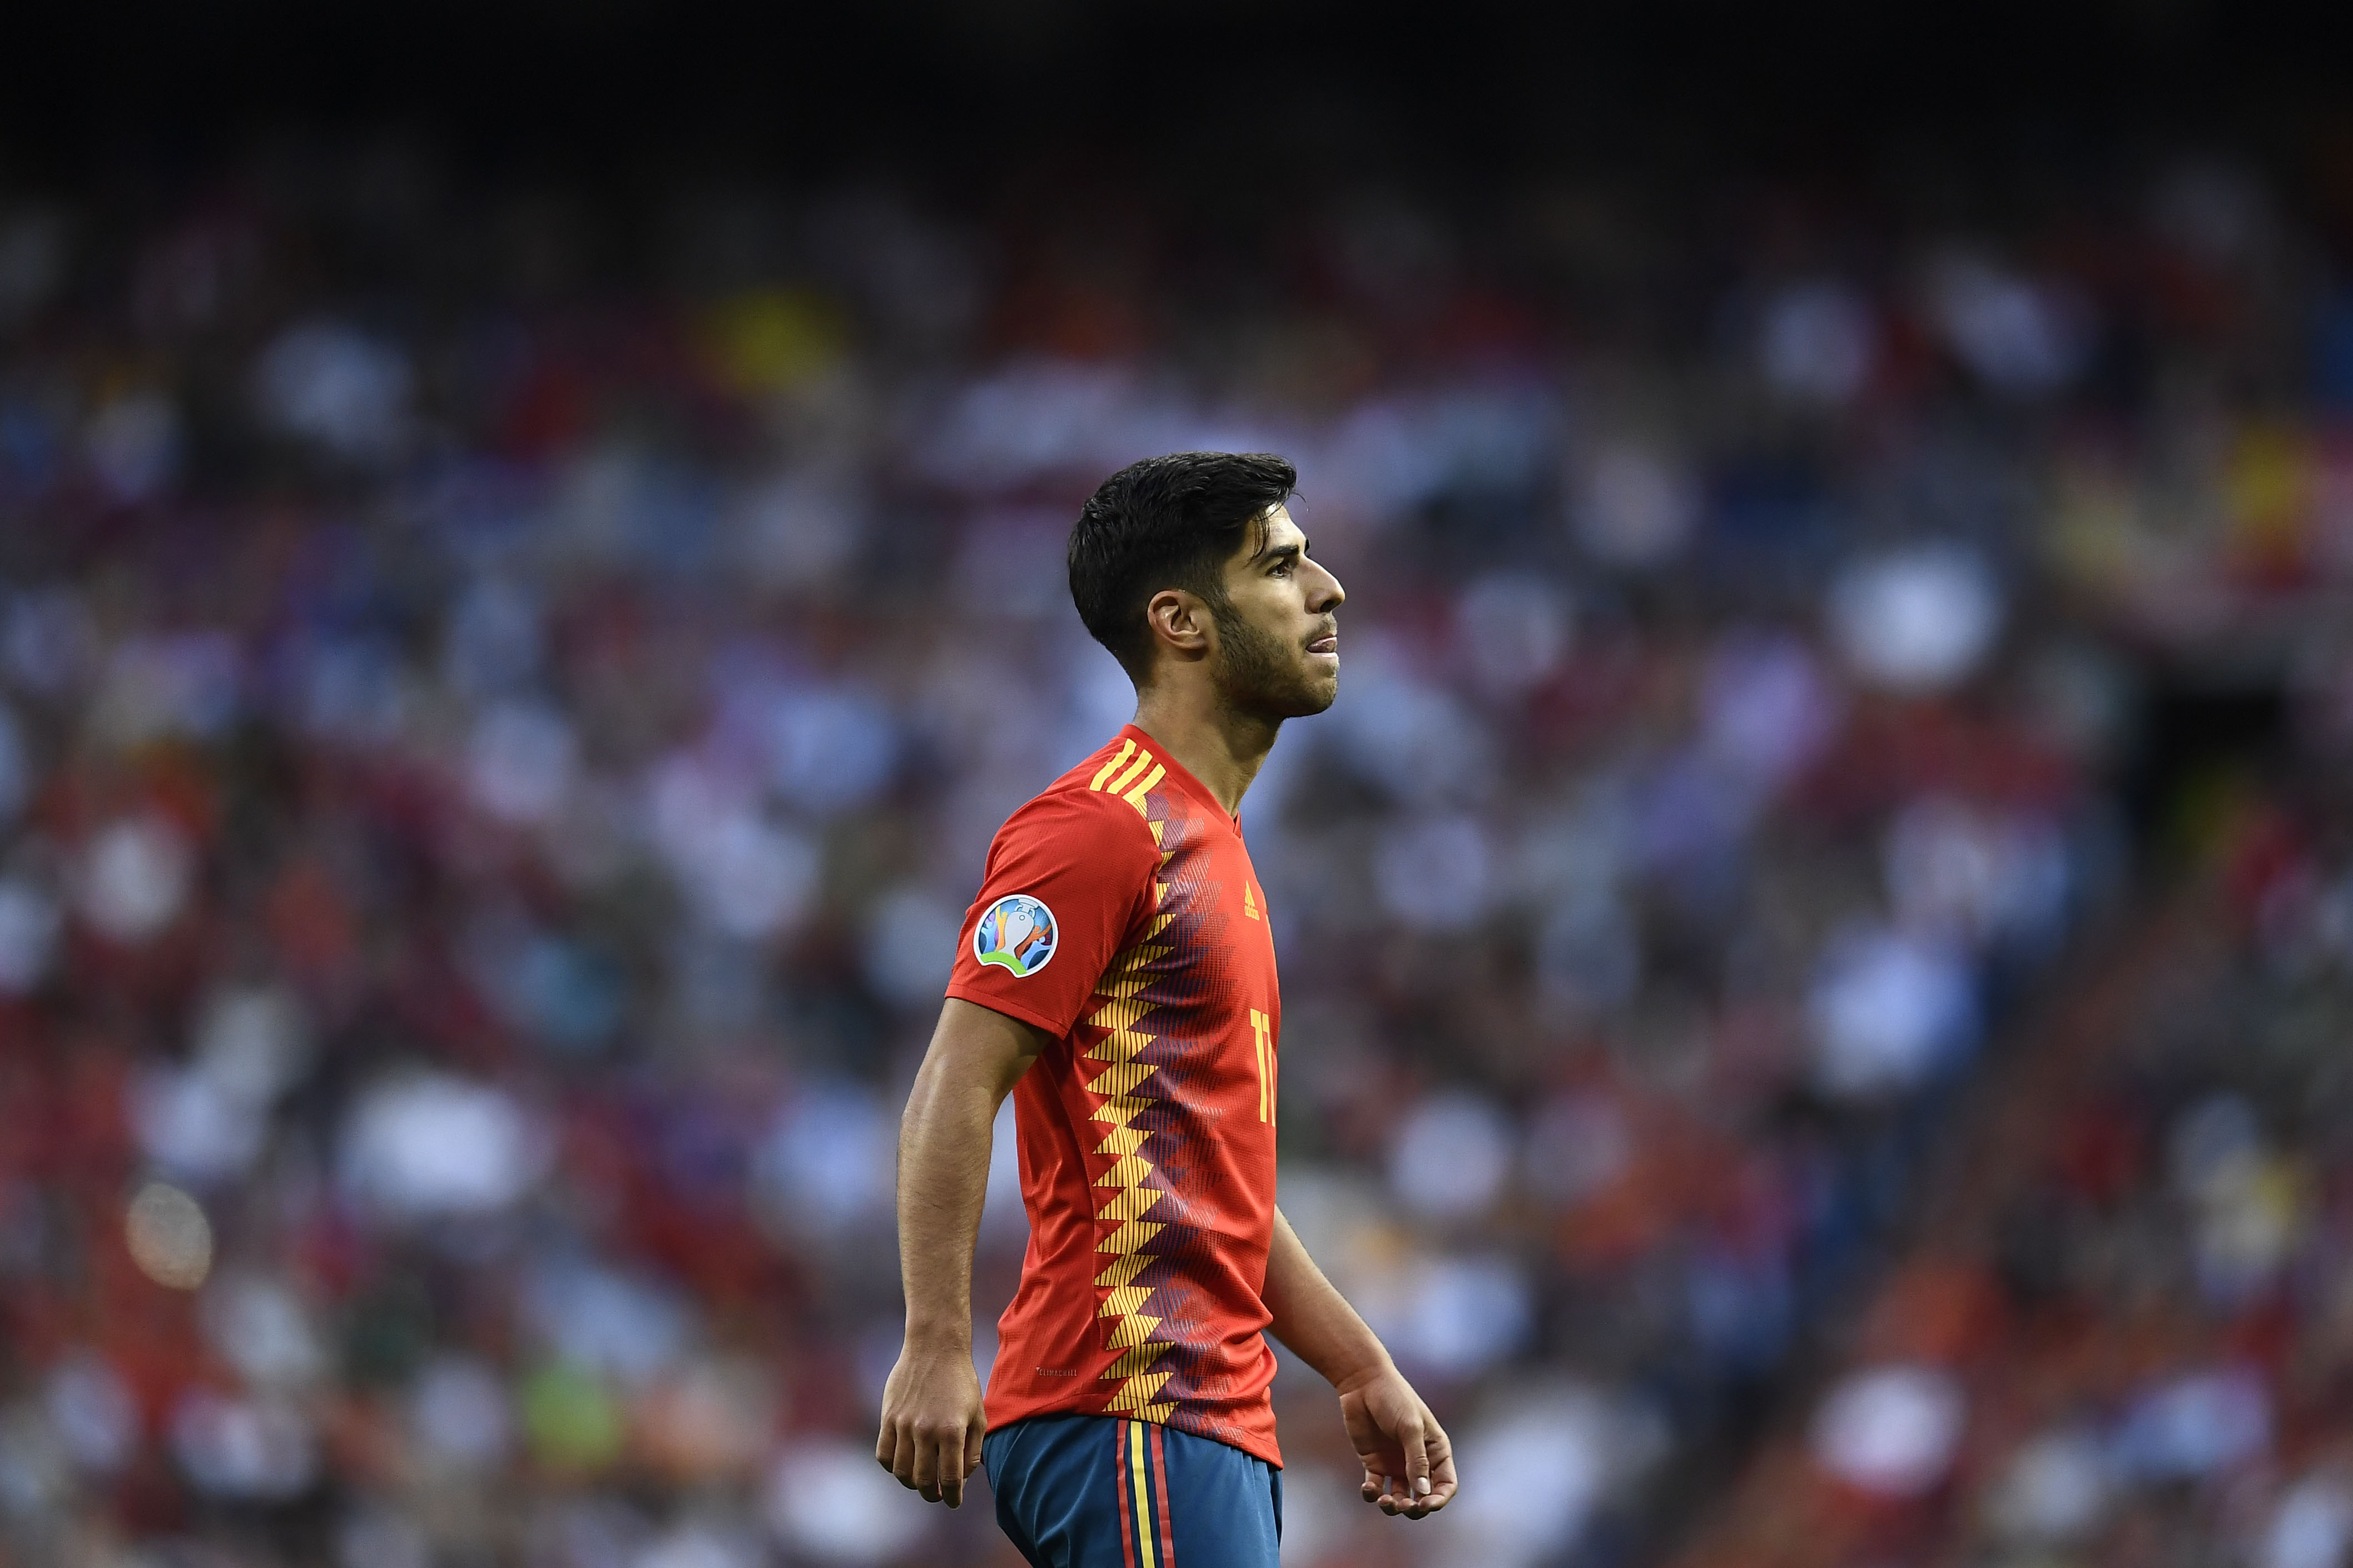 Could Asensio be on his way to Liverpool? (Photo by Oscar del Pozo/AFP/Getty Images)